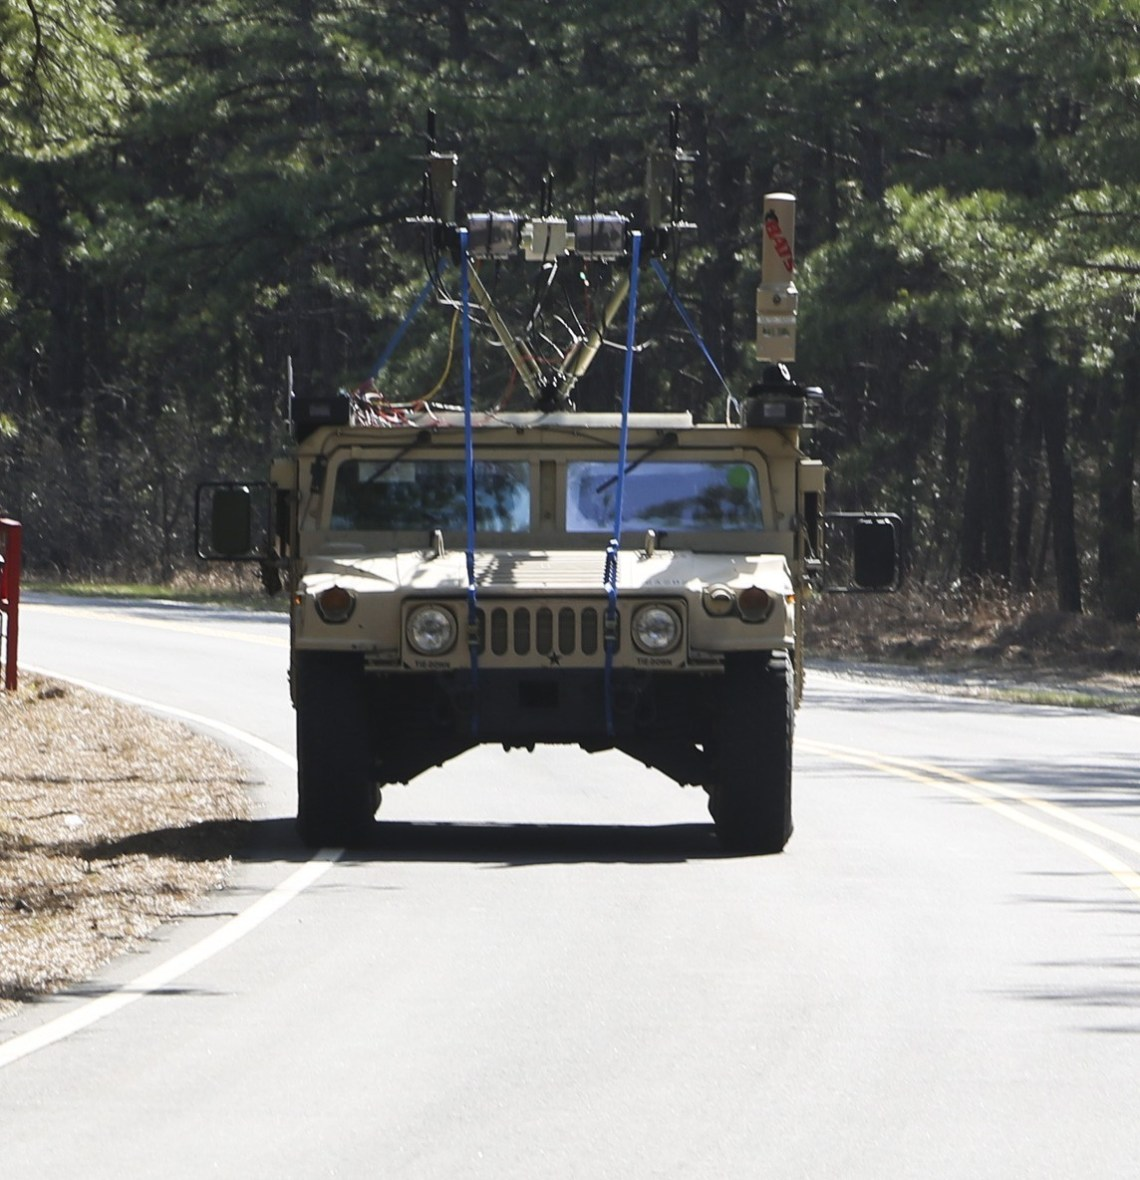 US Army Engineers Field-test Robotic Combat Vehicles (RCVs) Communications